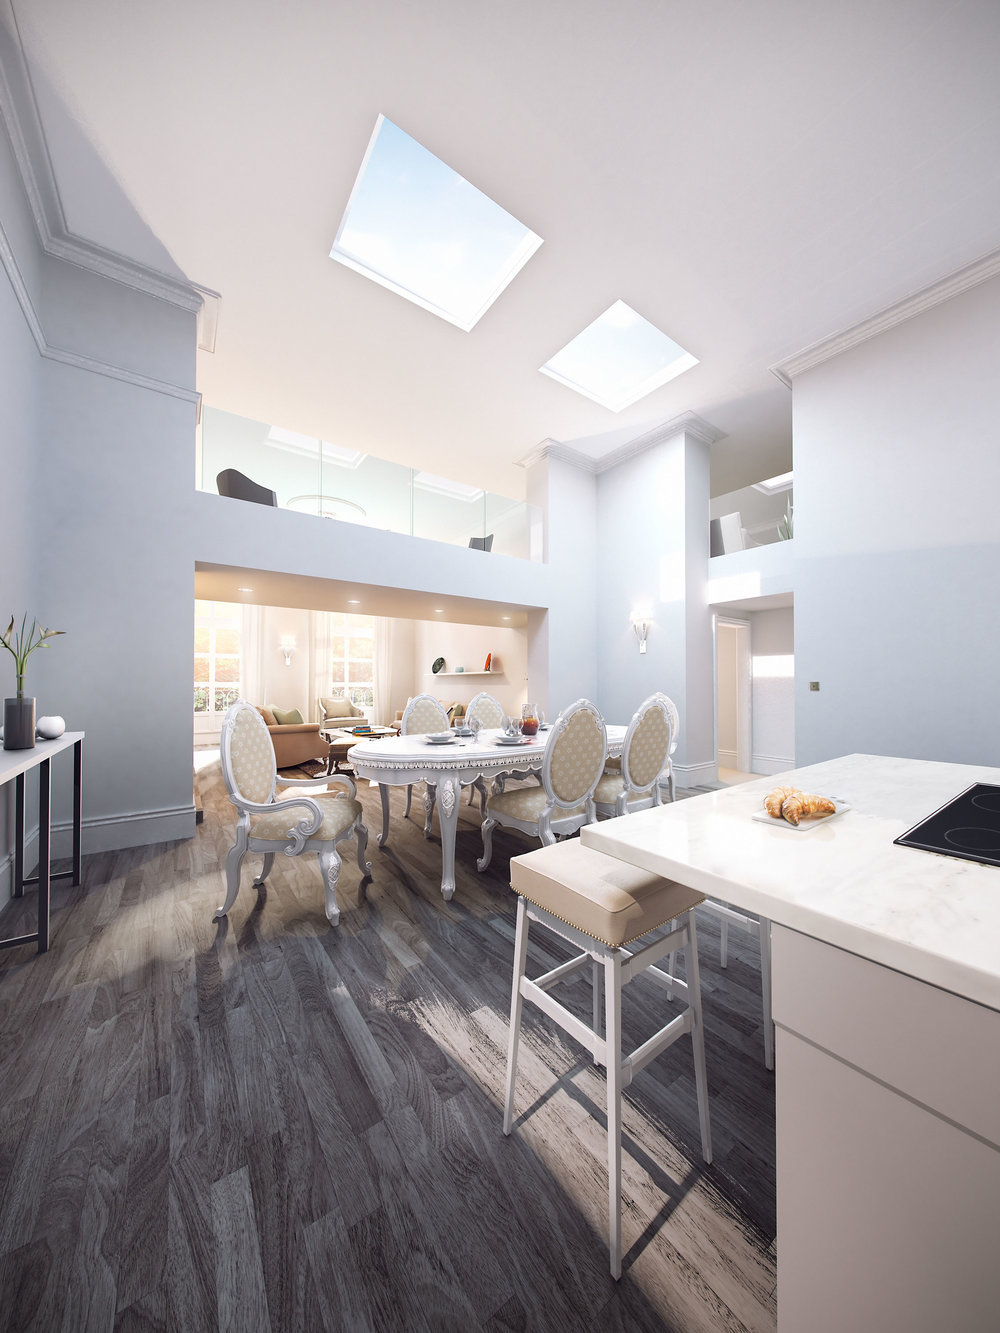 Queens Park Villas  - Interior Visual - Brighton, UK